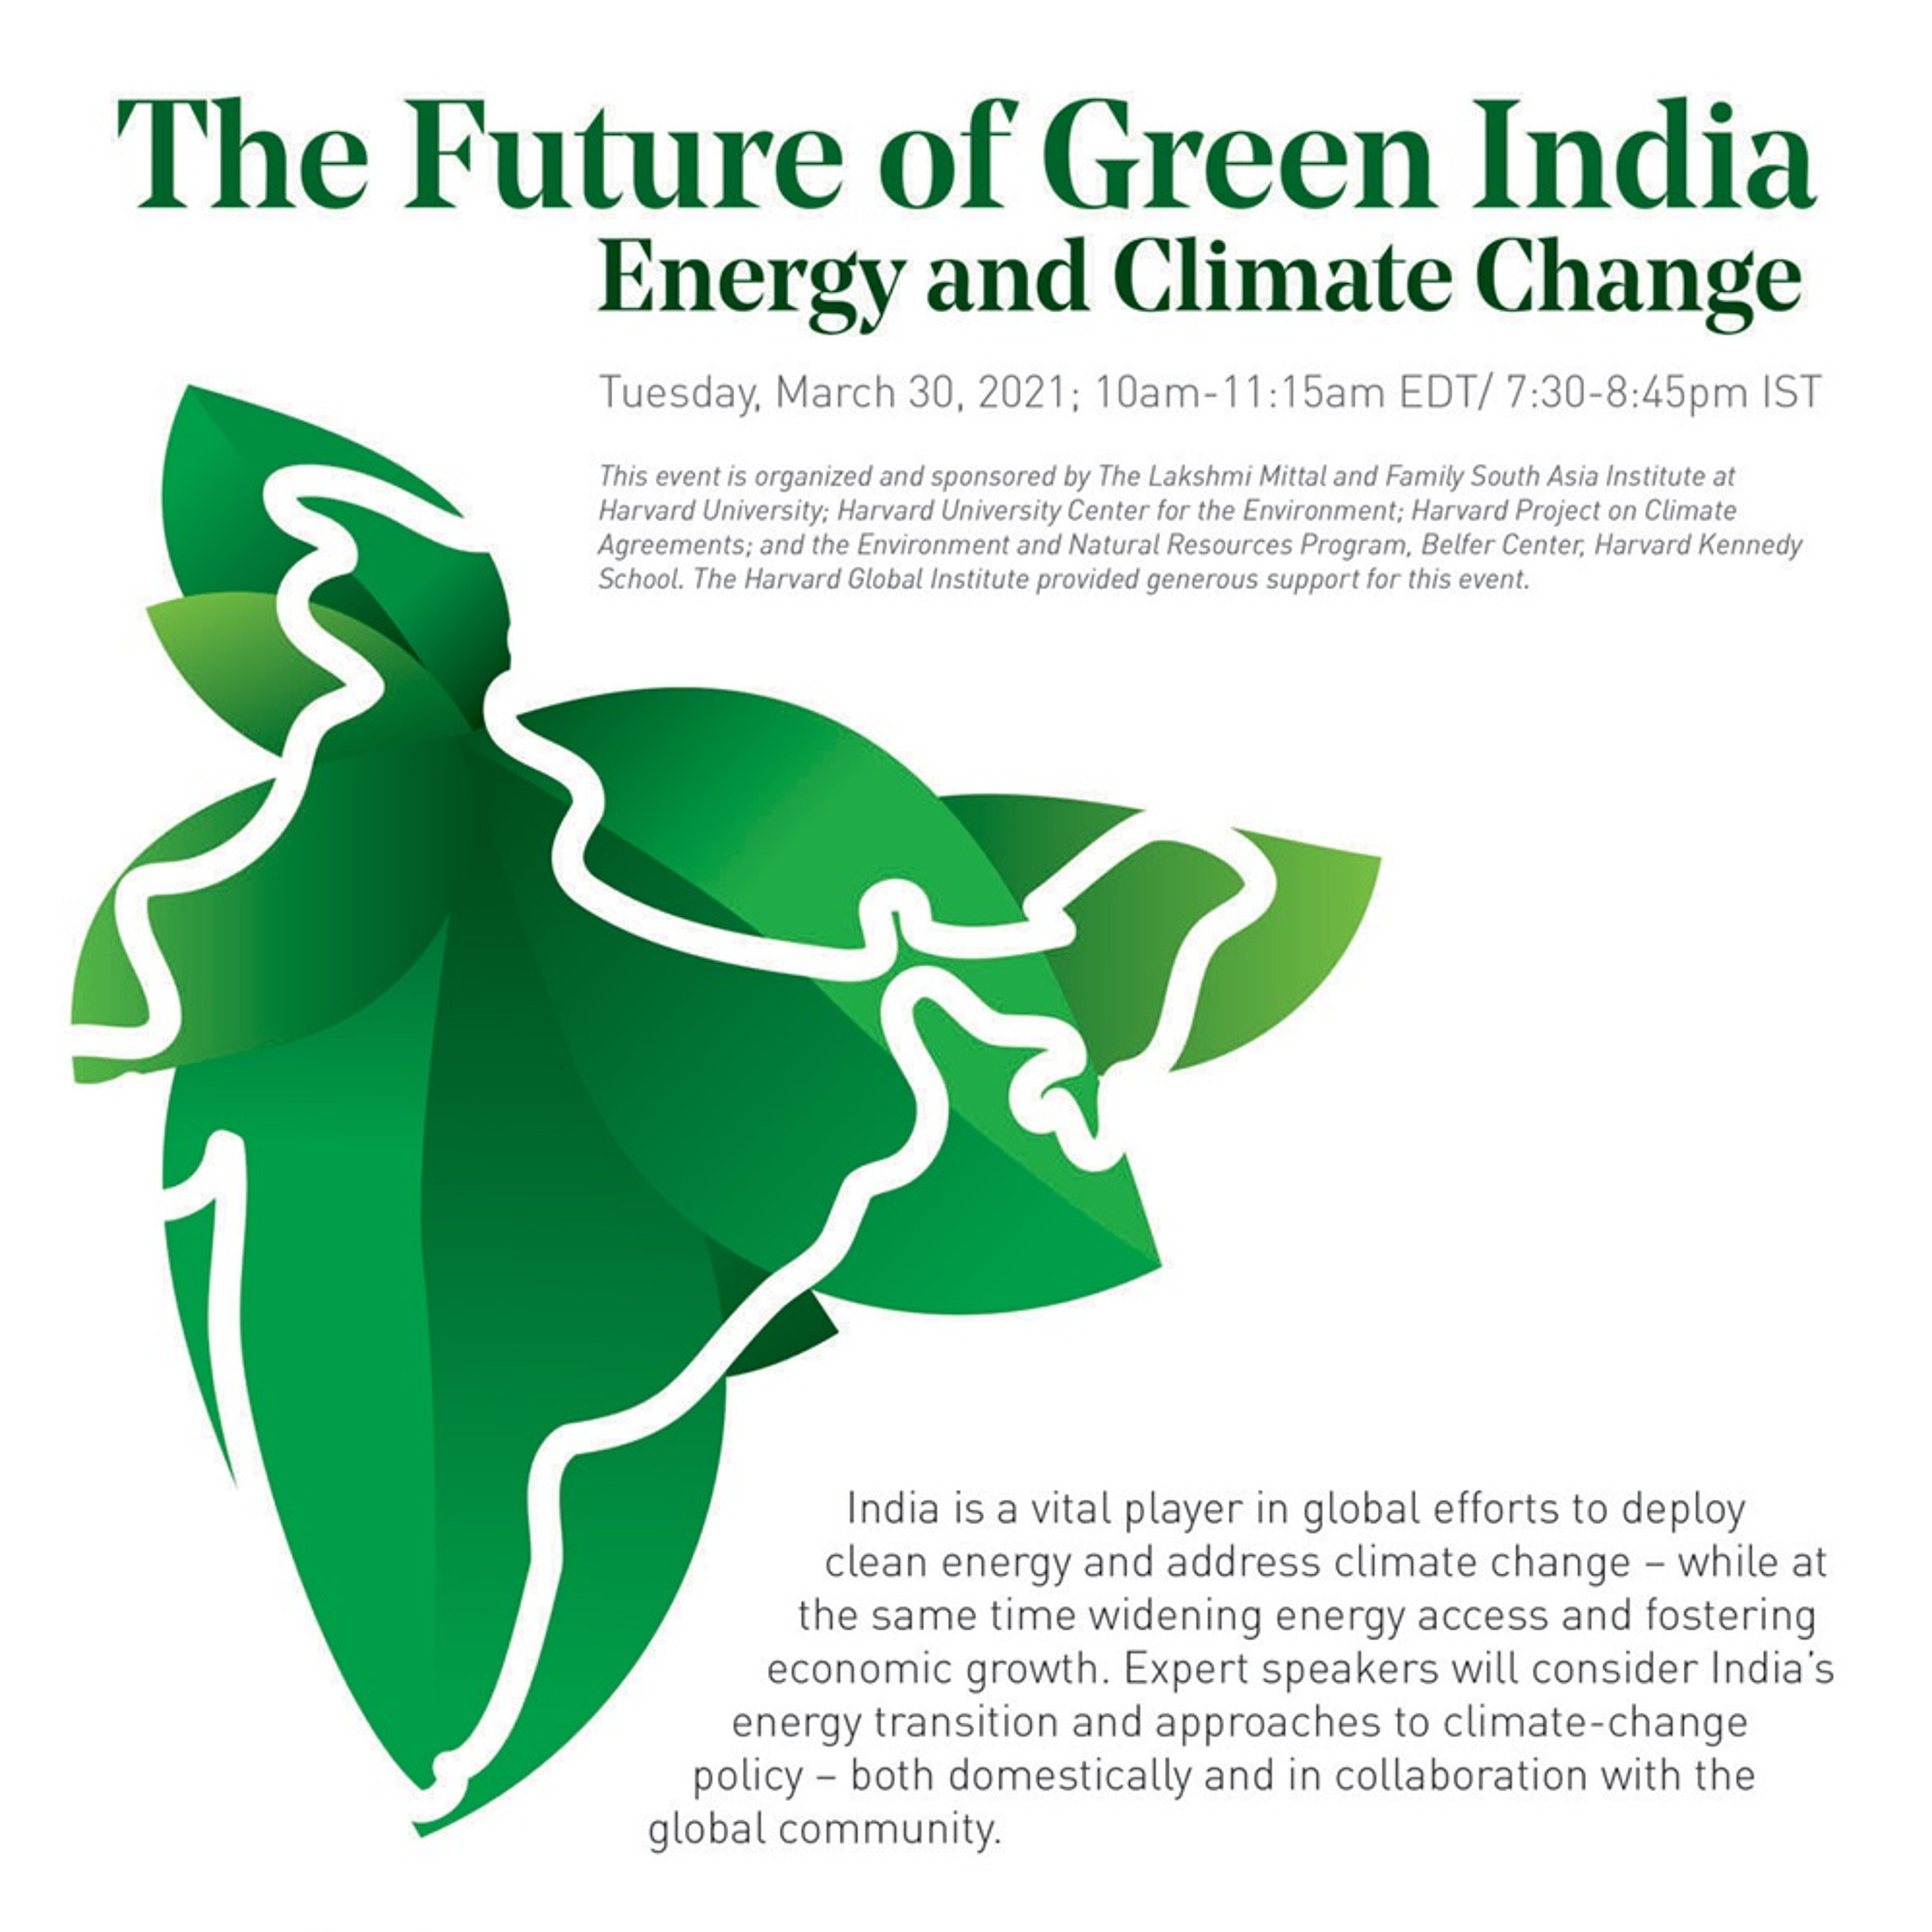 The Future of Green India: Energy and Climate Change